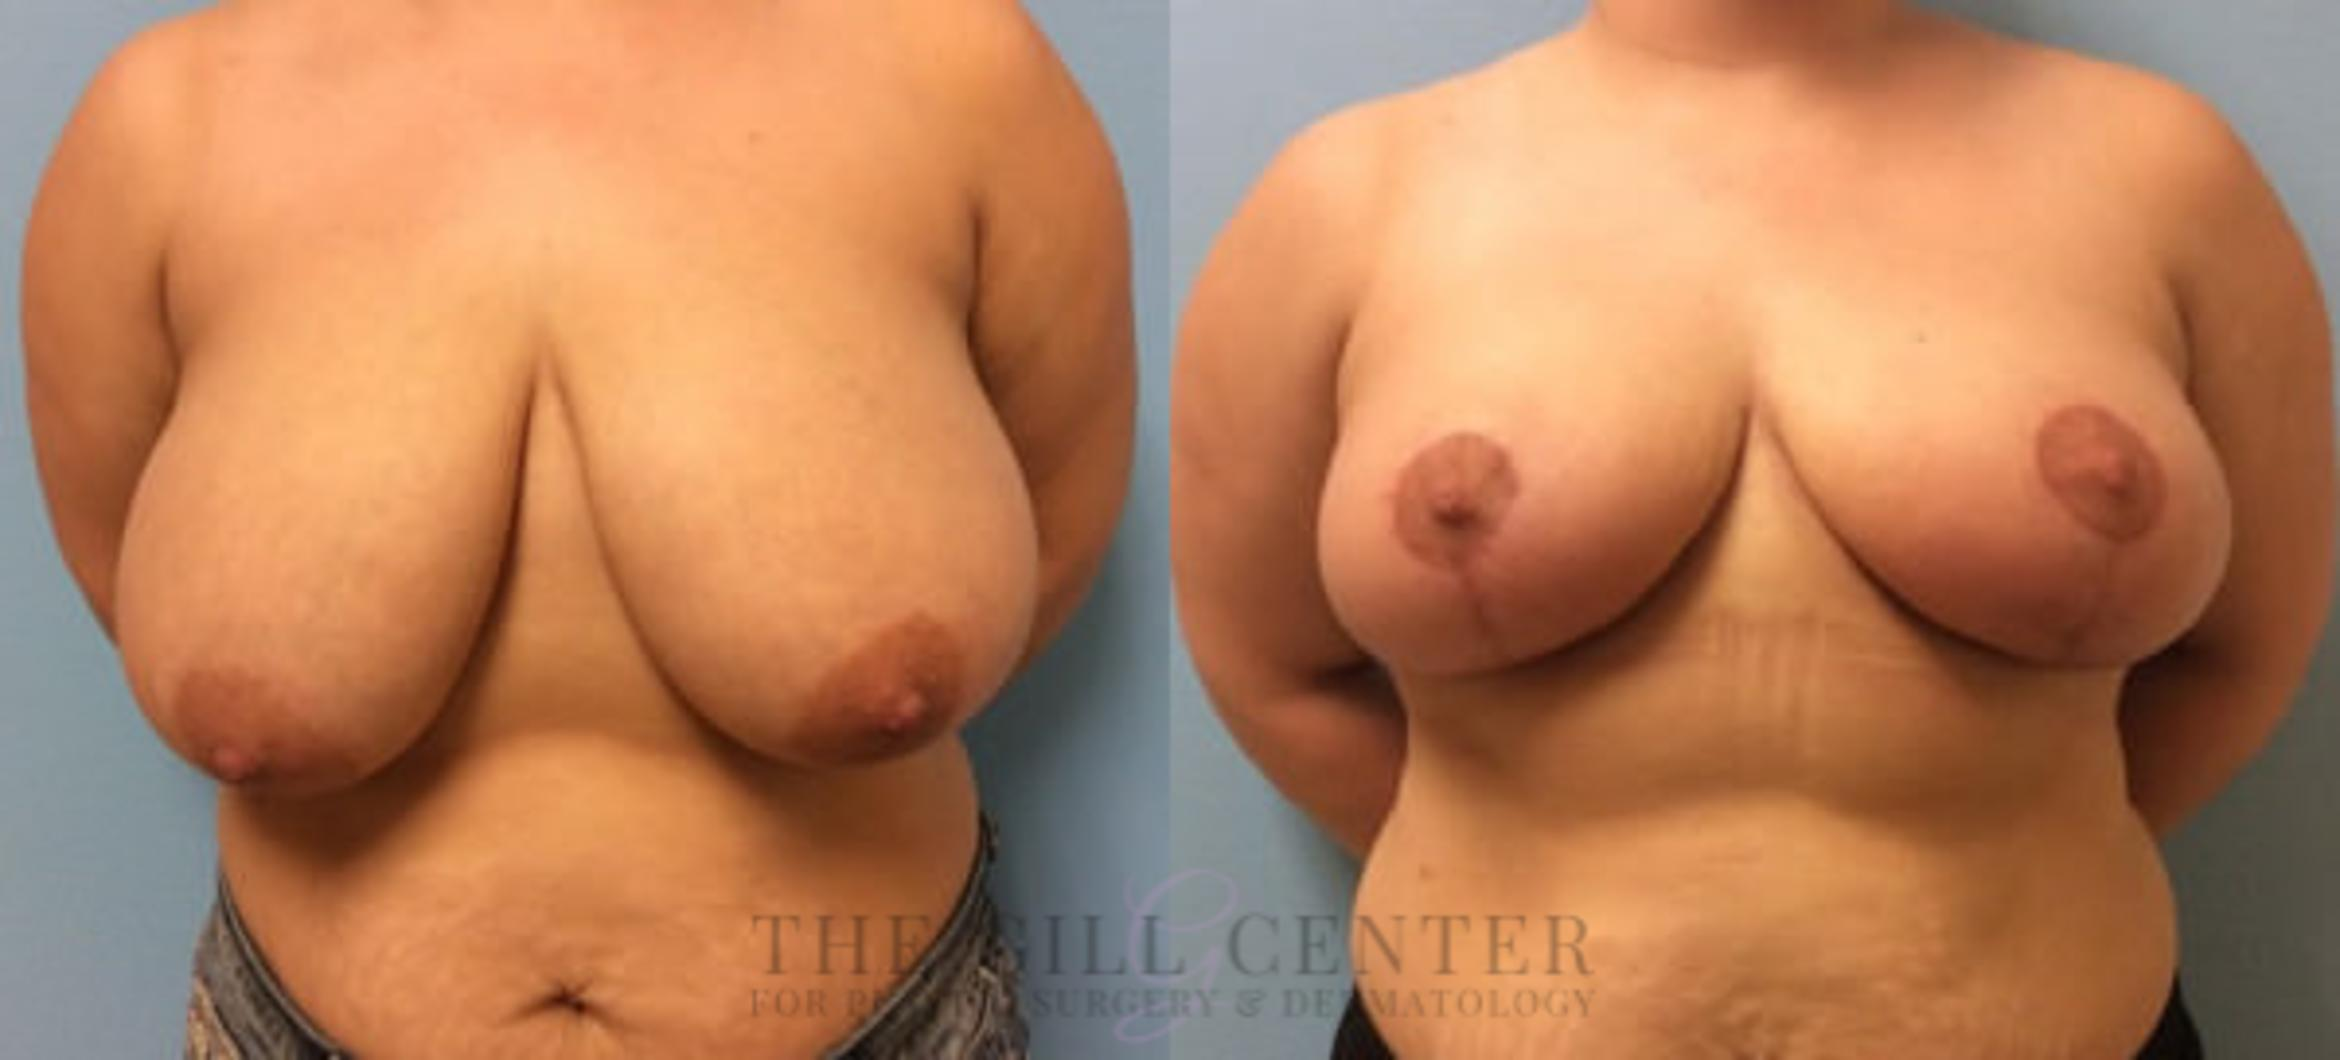 Breast Reduction Case 126 Before & After Front | Shenandoah, TX | The Gill Center for Plastic Surgery and Dermatology